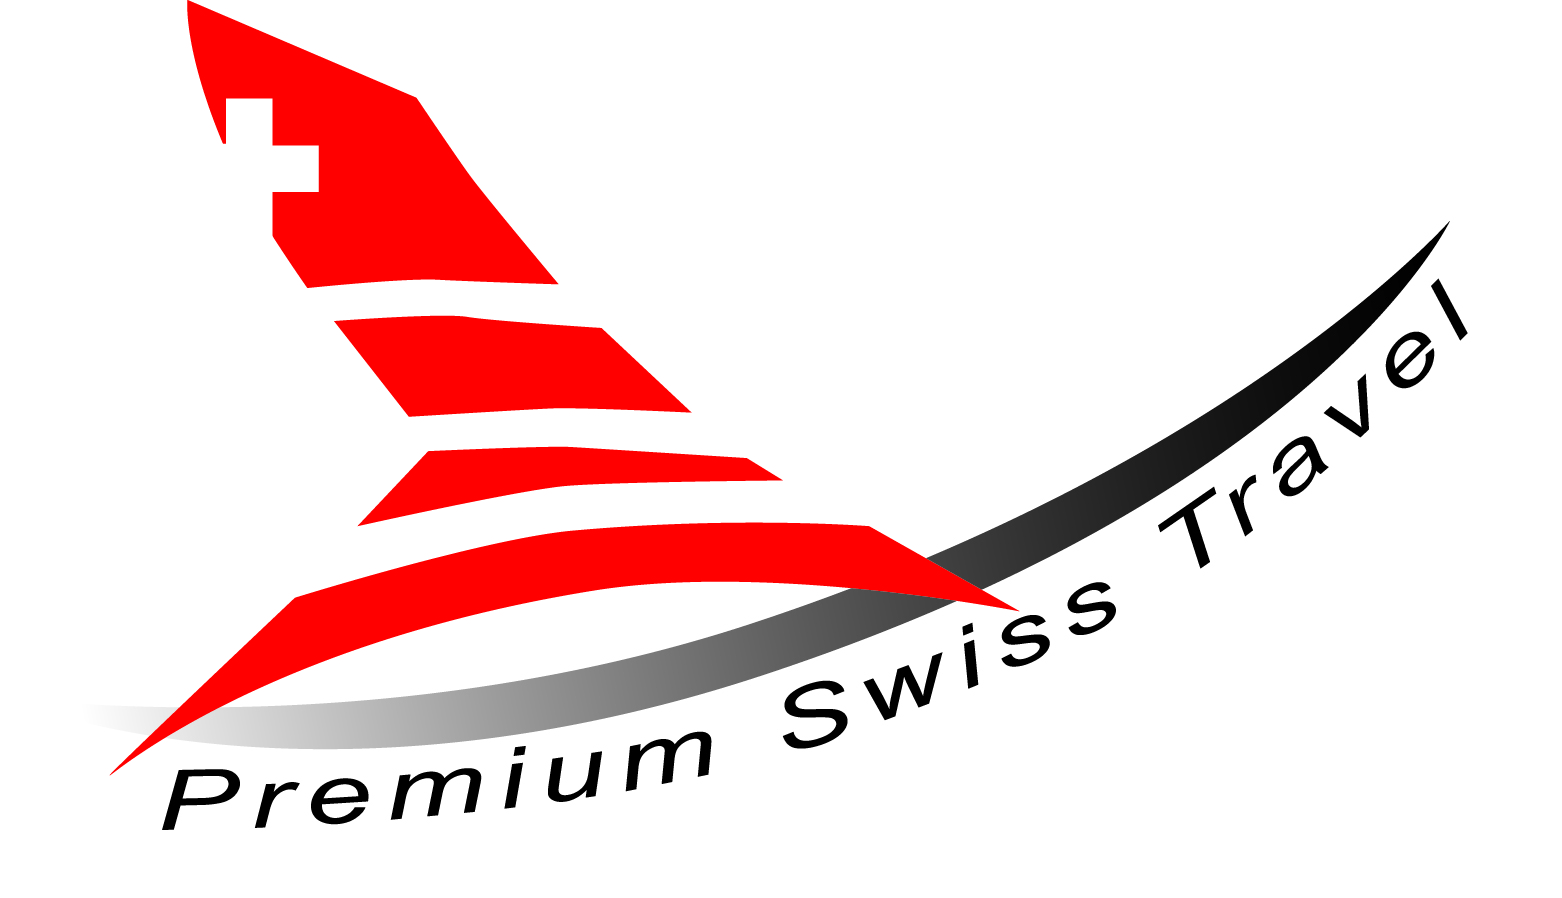 Premium Swiss Travel | Luxury Swiss and European tours